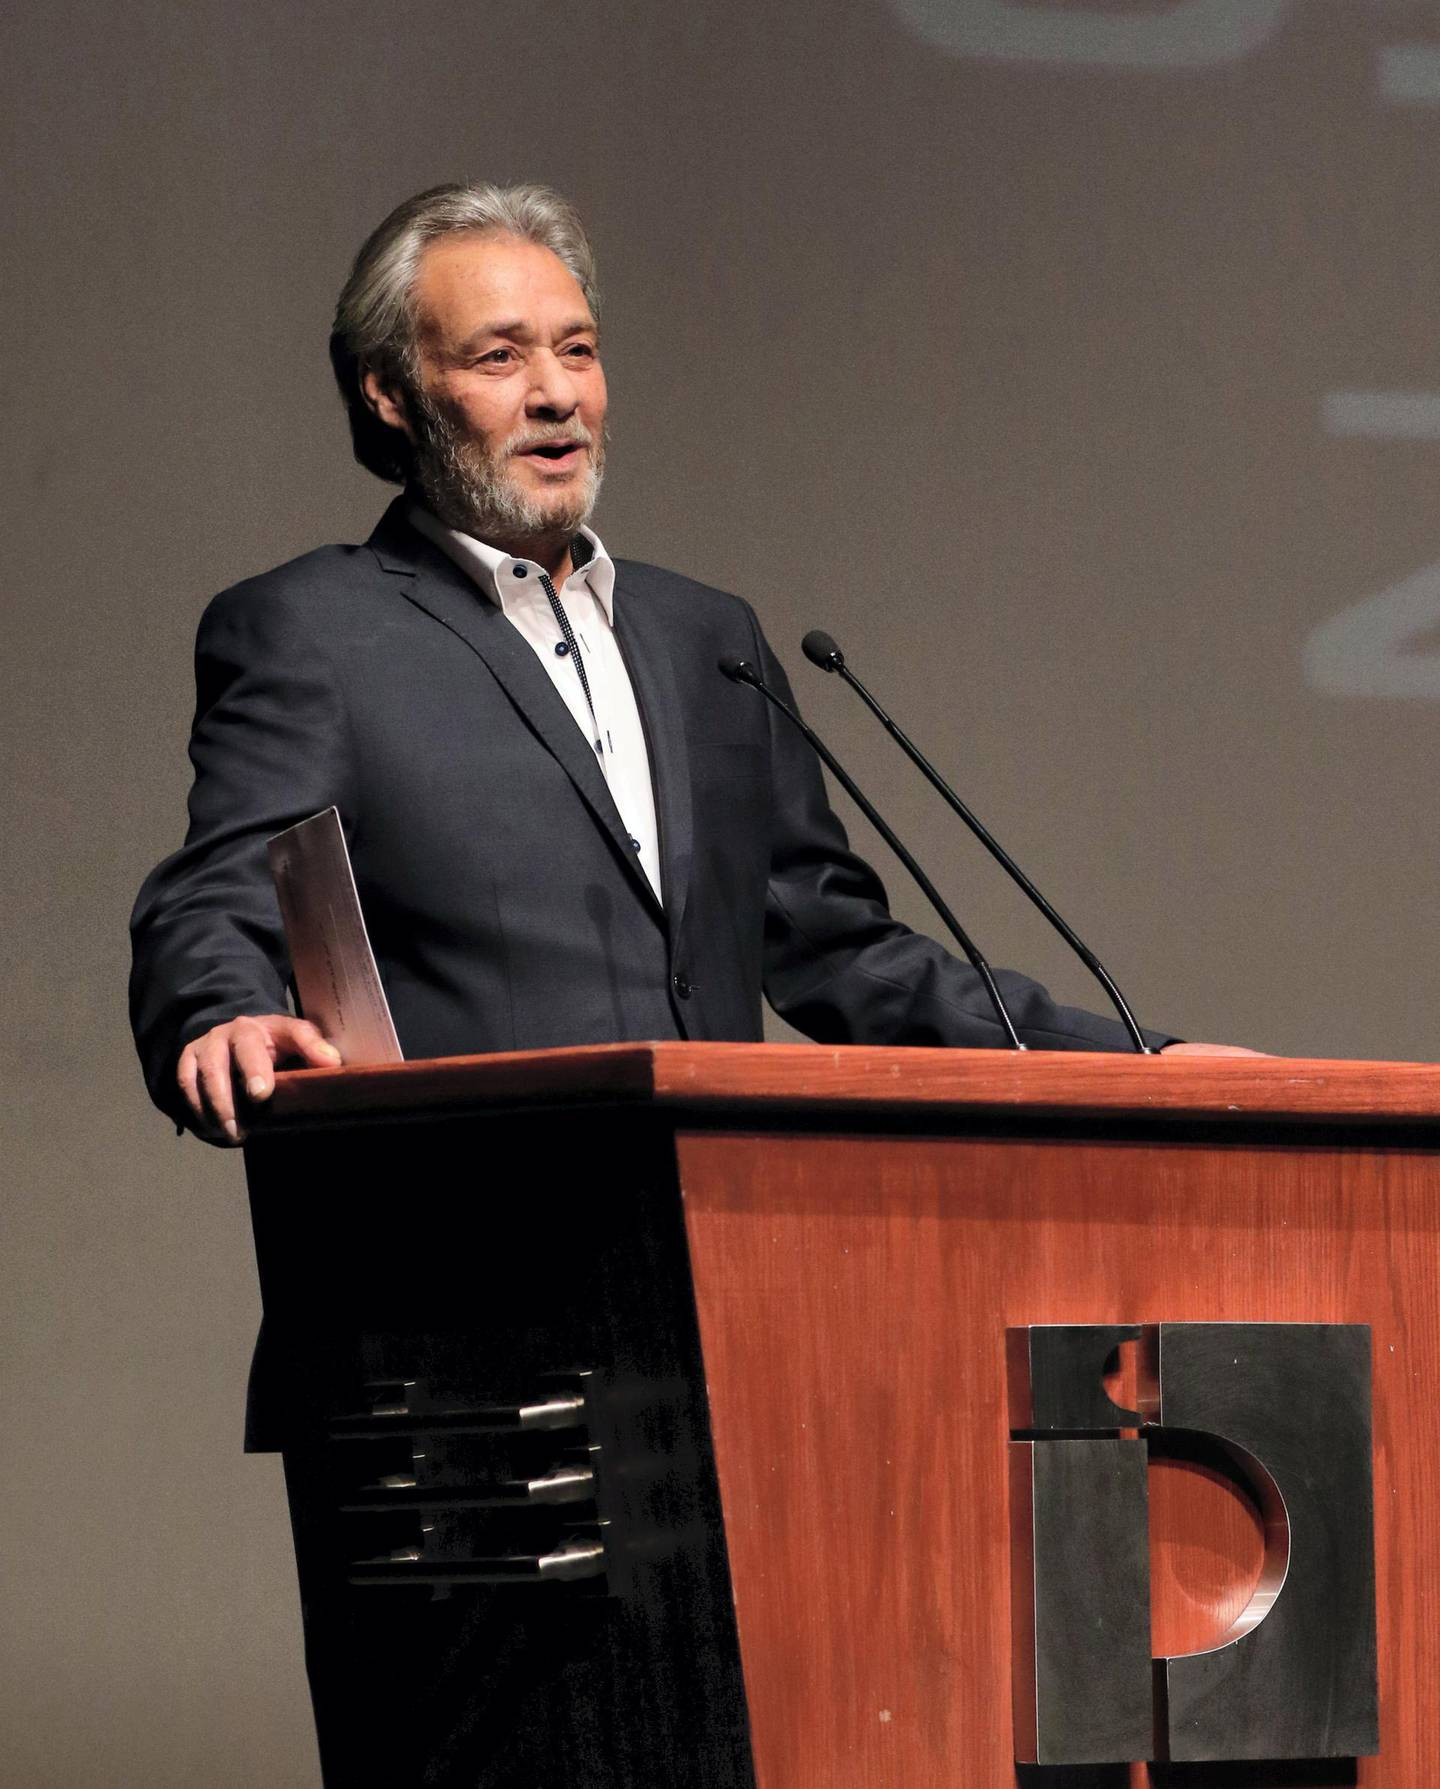 Mandatory Credit: Photo by Youssef Badawi/EPA/Shutterstock (8823553h) Farouk al-Fishawi Actors Day in Damascus, Syria - 17 May 2017 Egyptian actor Farouk al-Fishawi speaks after he was honored during an event held in Damascus, Syria, 17 May 2017, to mark the Actors Day. The event is sponsored by the Syrian Ministry of Culture and is attended by a number of Syrian and Arab actors.